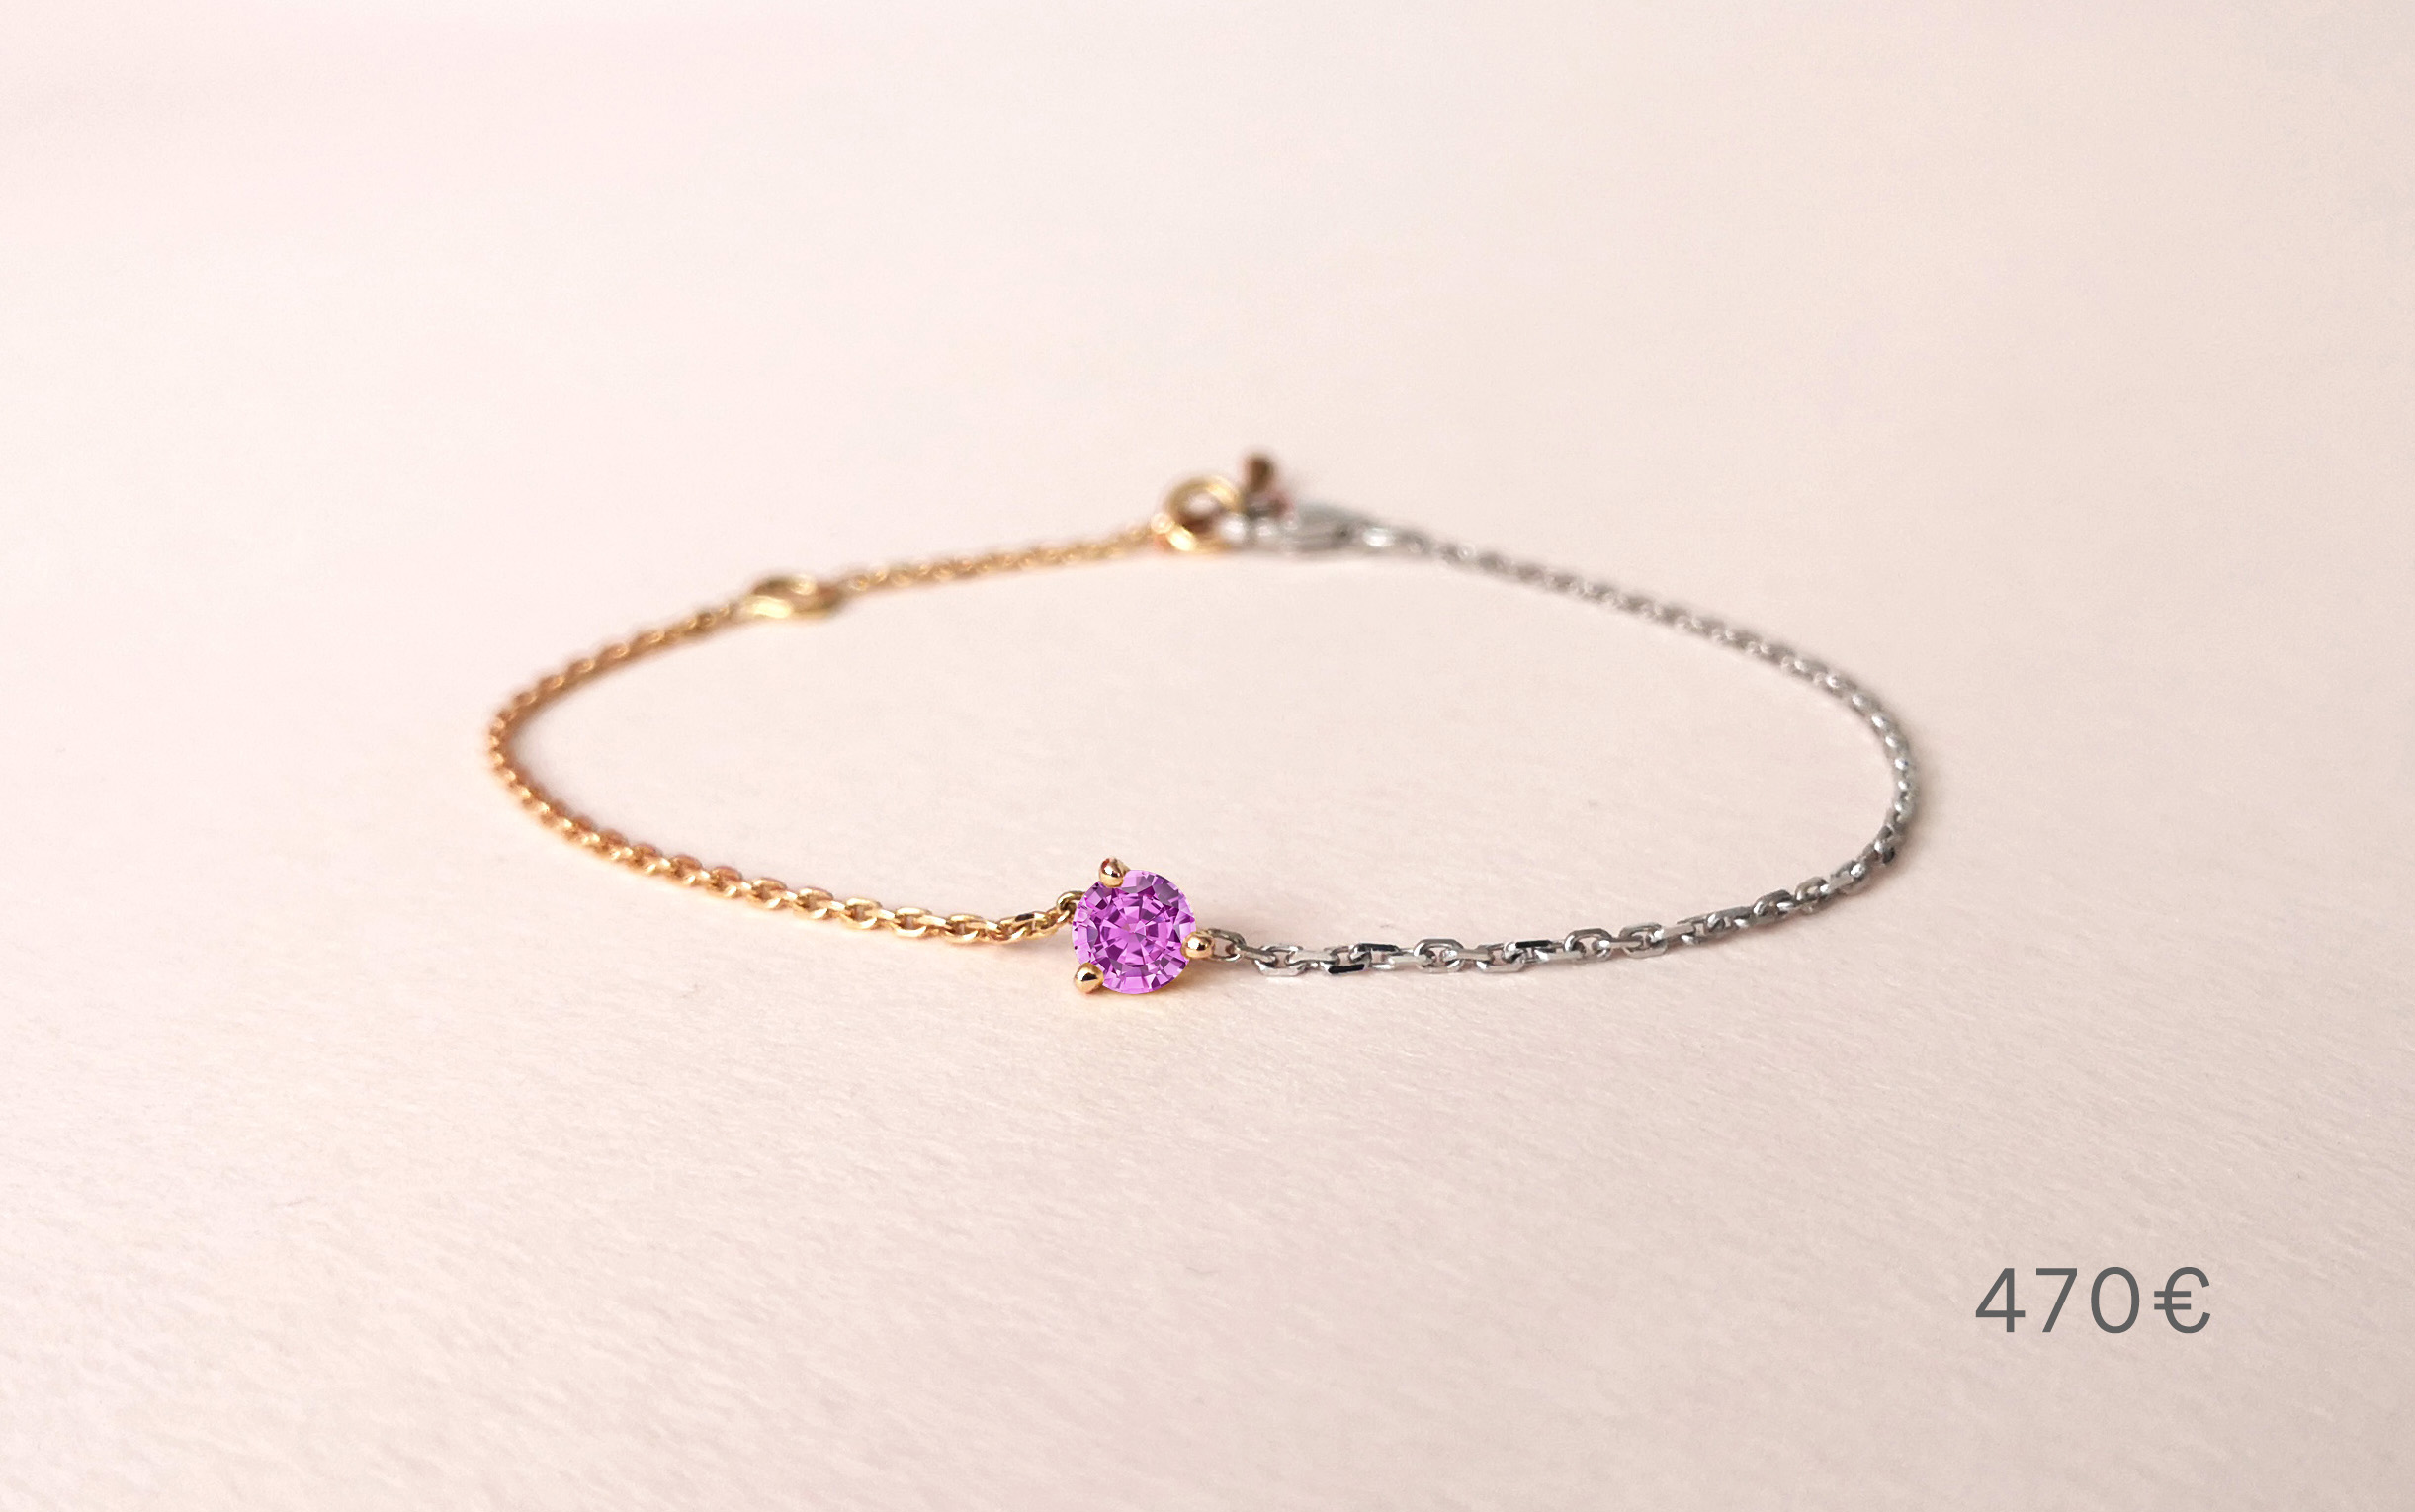 Bracelet Douce Echappée saphir rose, Collection Weekends Express - Courpré Joaillerie - The Explorative Fine Jewelry